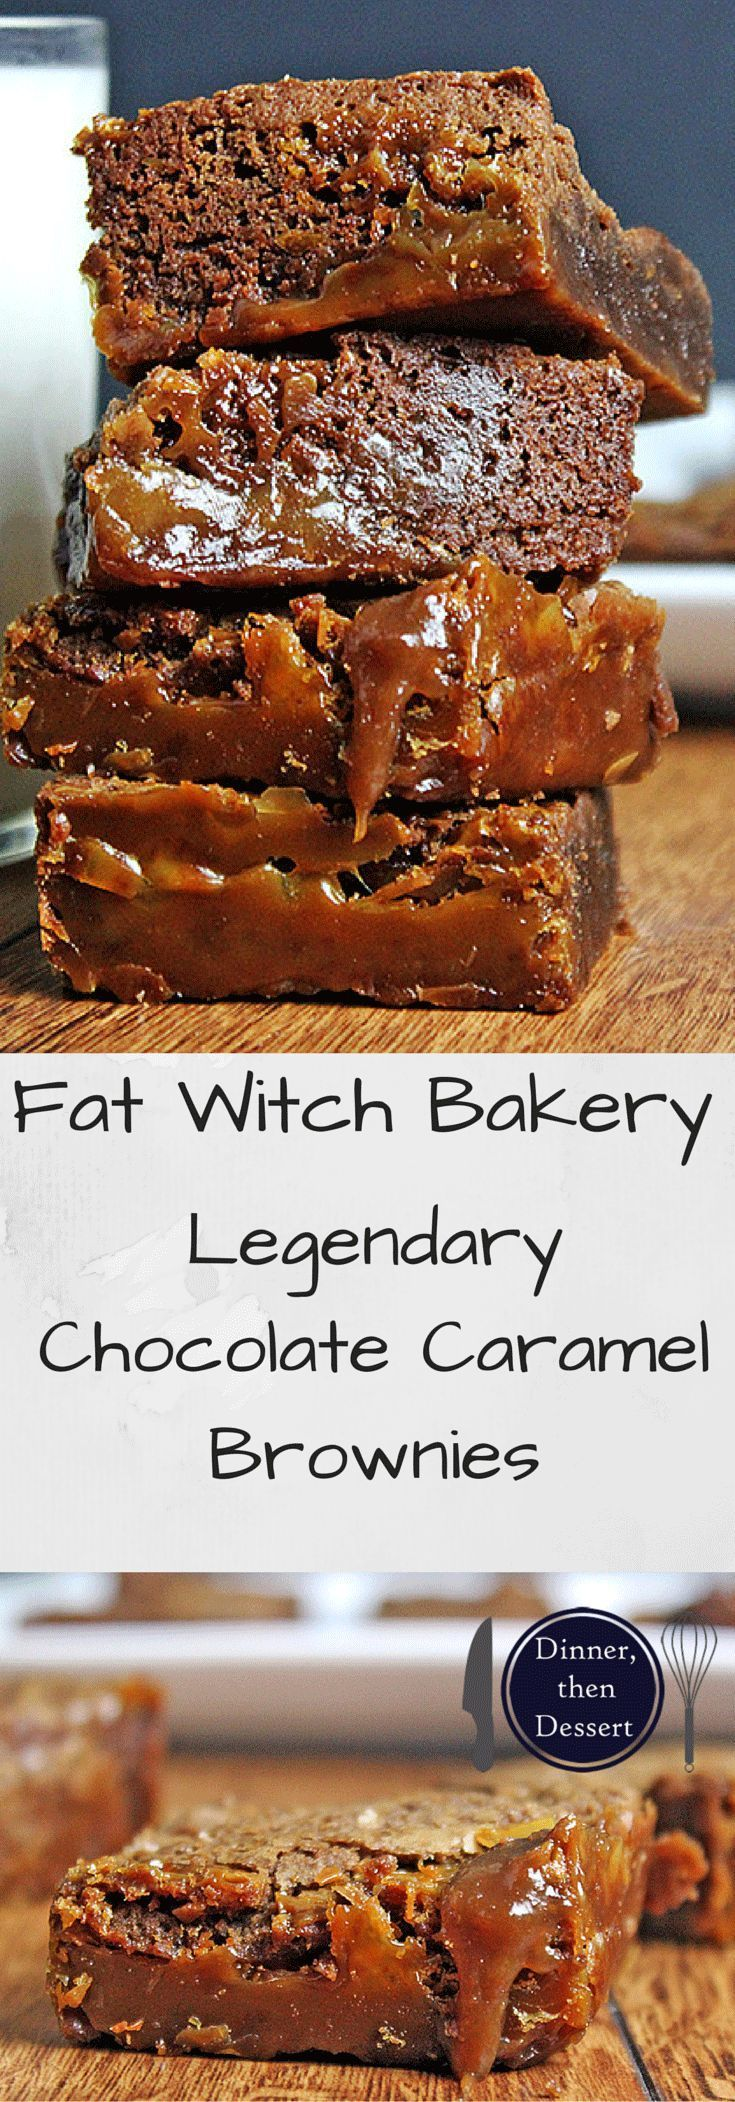 Fat Witch Bakery's Legendary Chocolate Caramel Brownies are soft, crisp, gooey, chocolate-y, chewy, decadent, rich, fudgy and